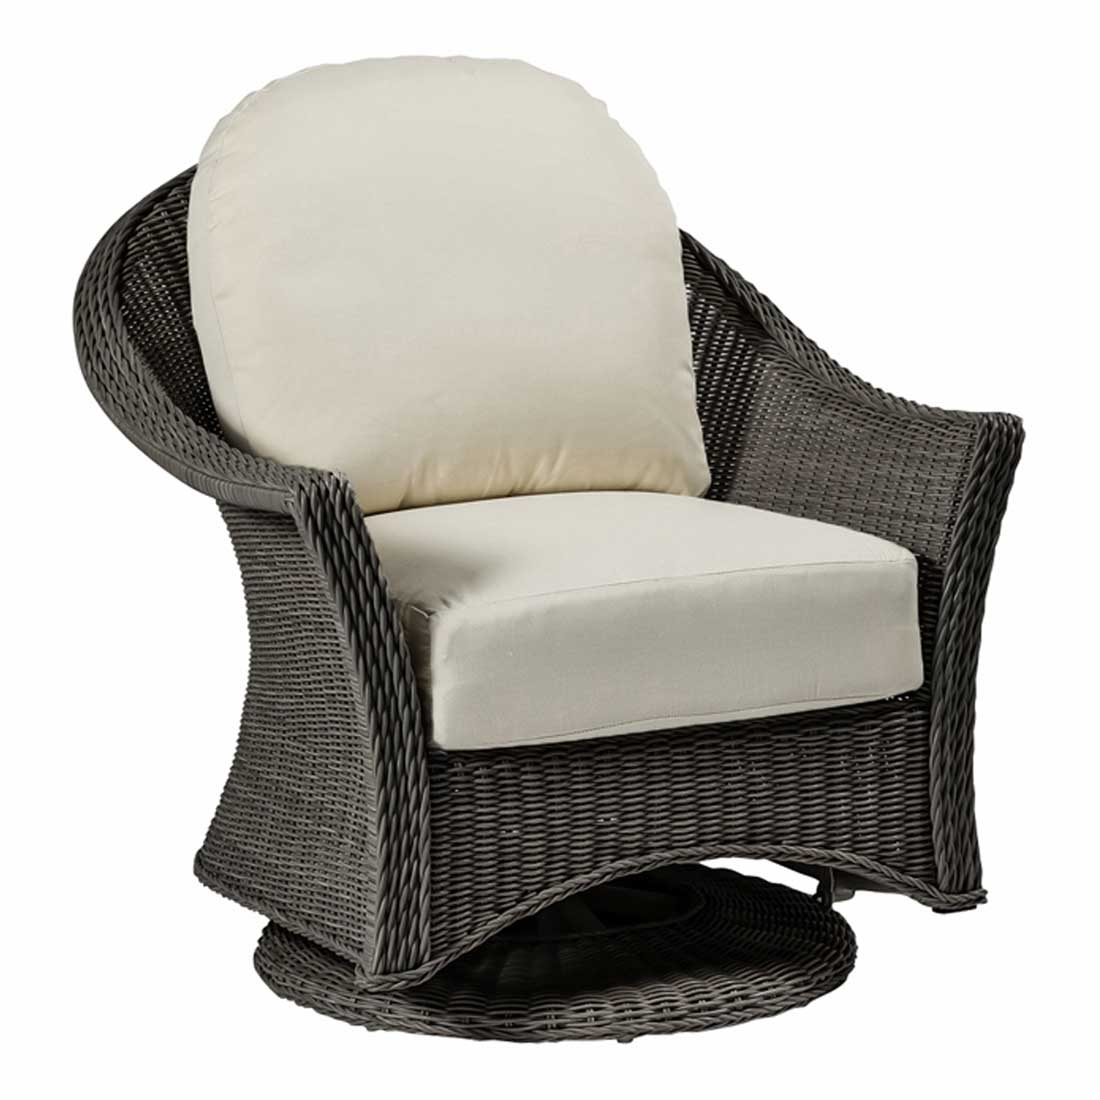 Regent Swivel Glider Outdoor Glider Furniture